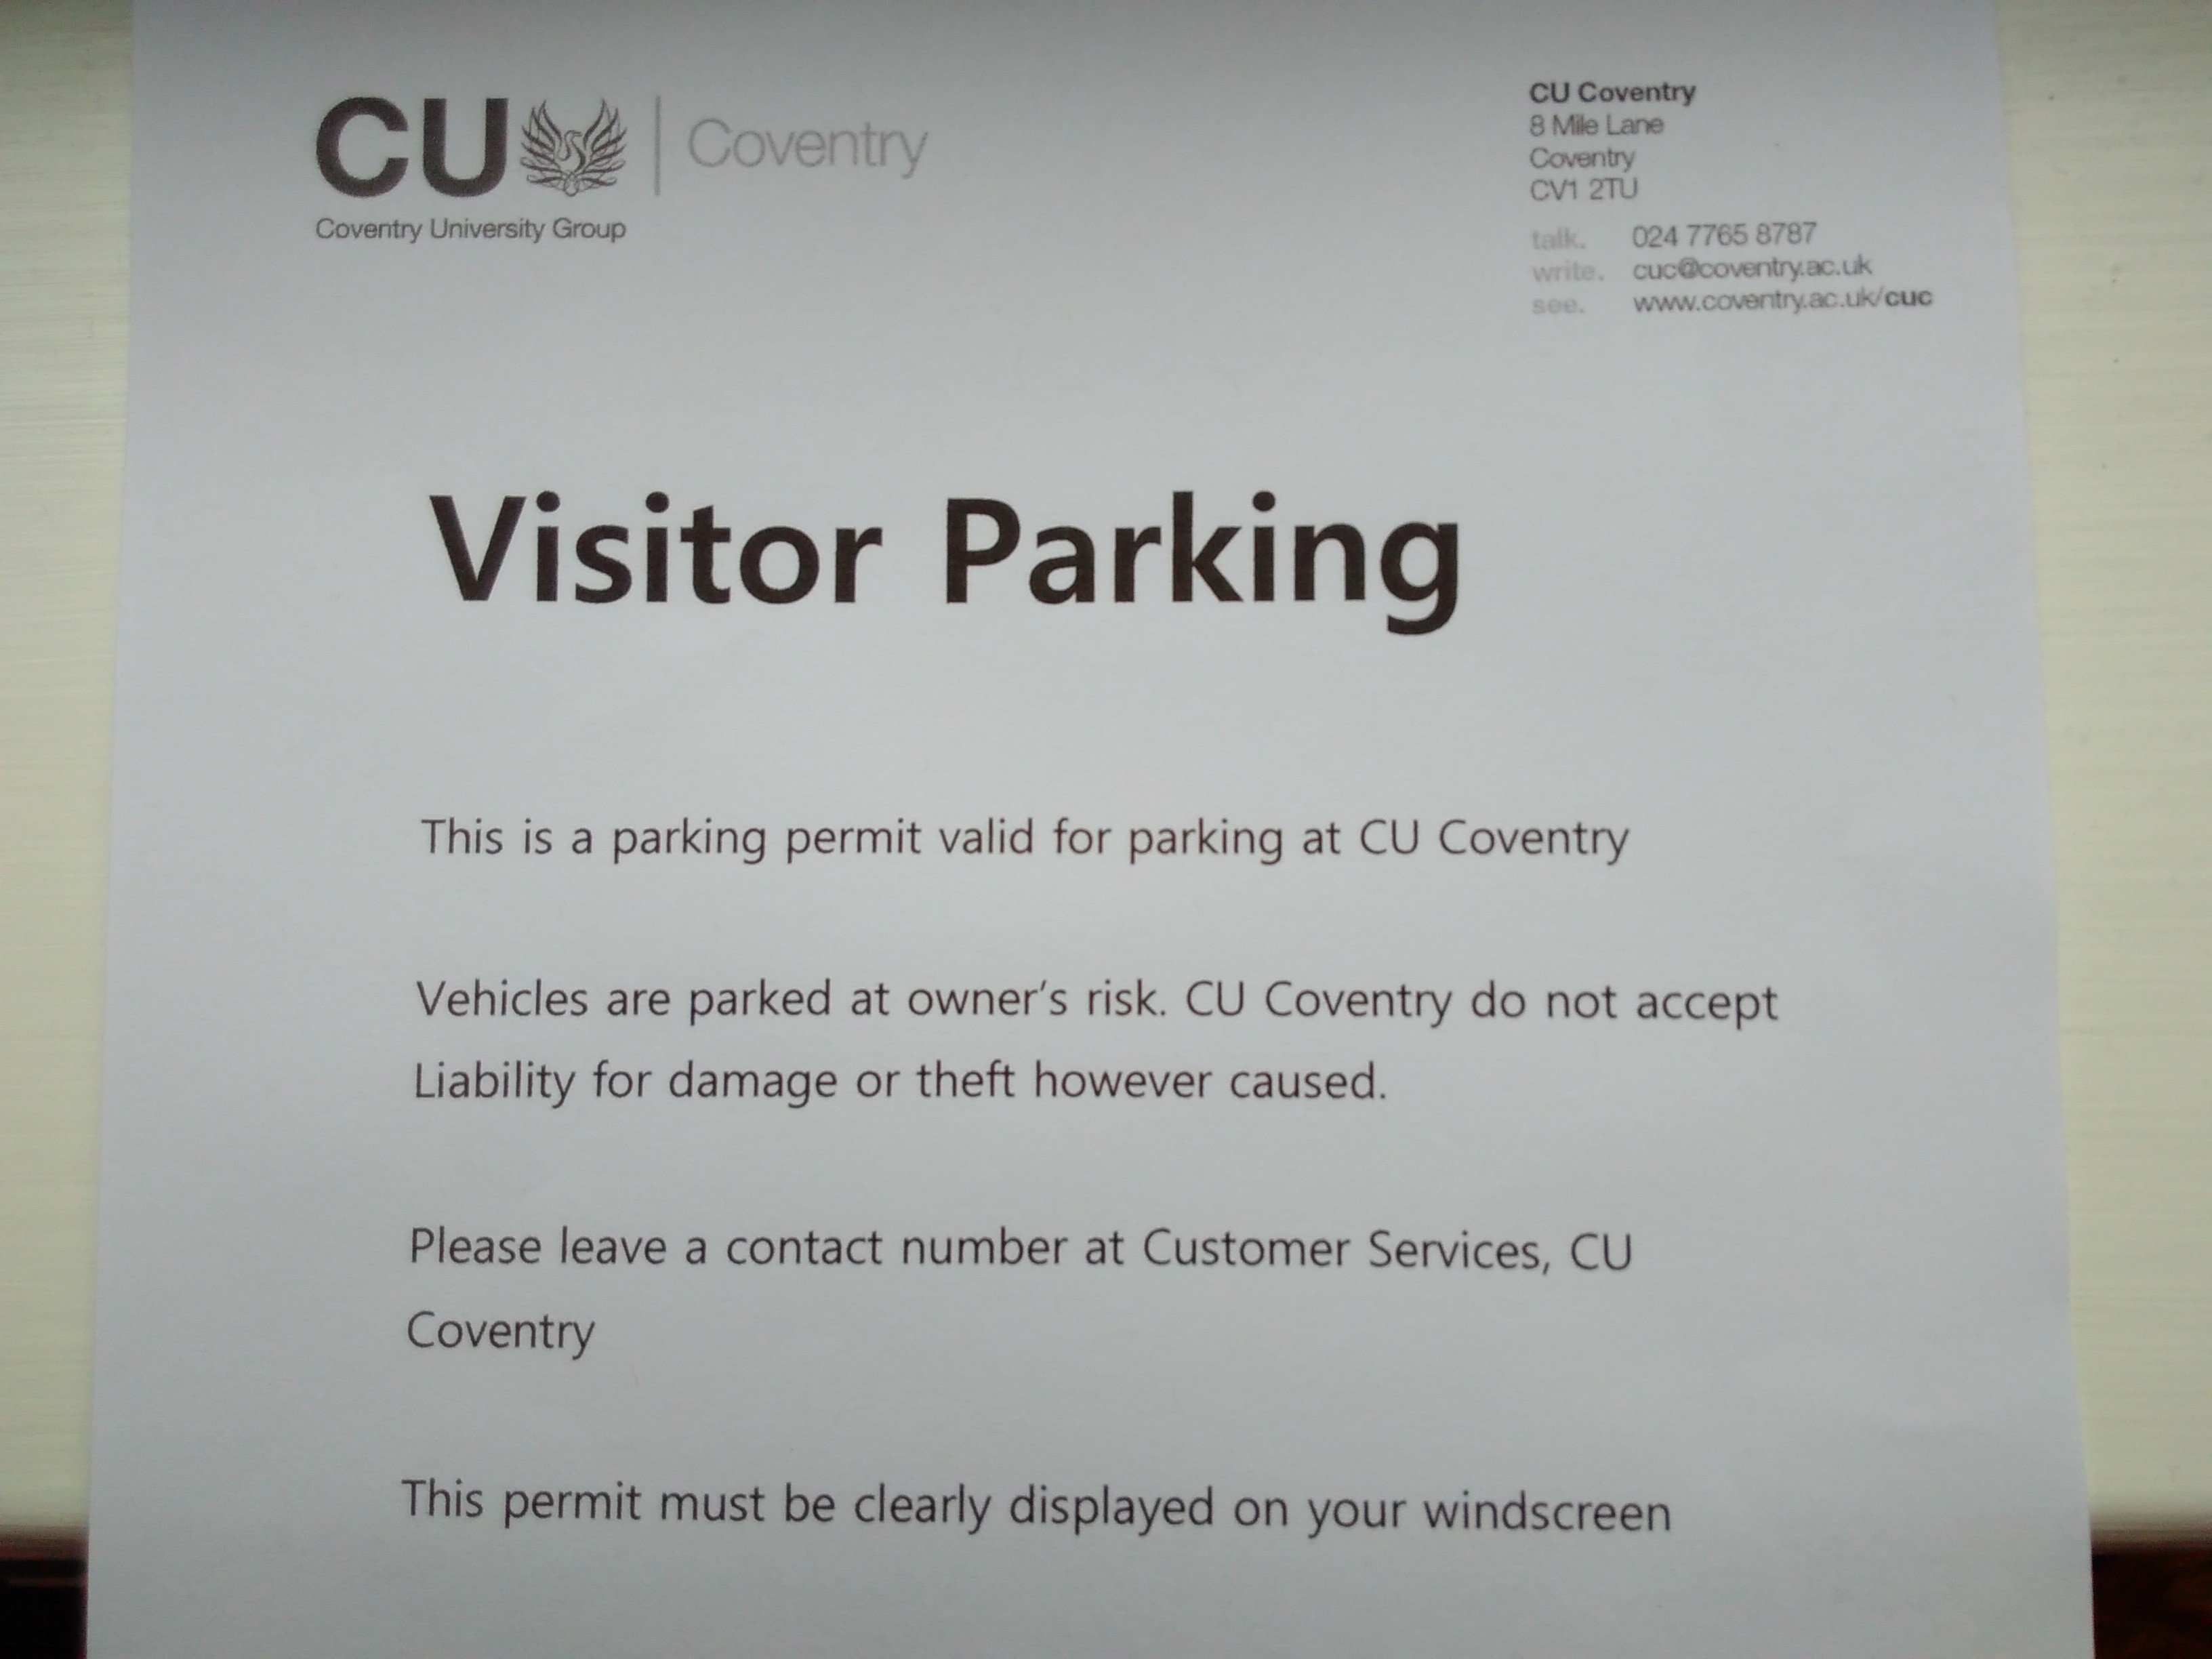 Cov Uni parking permit